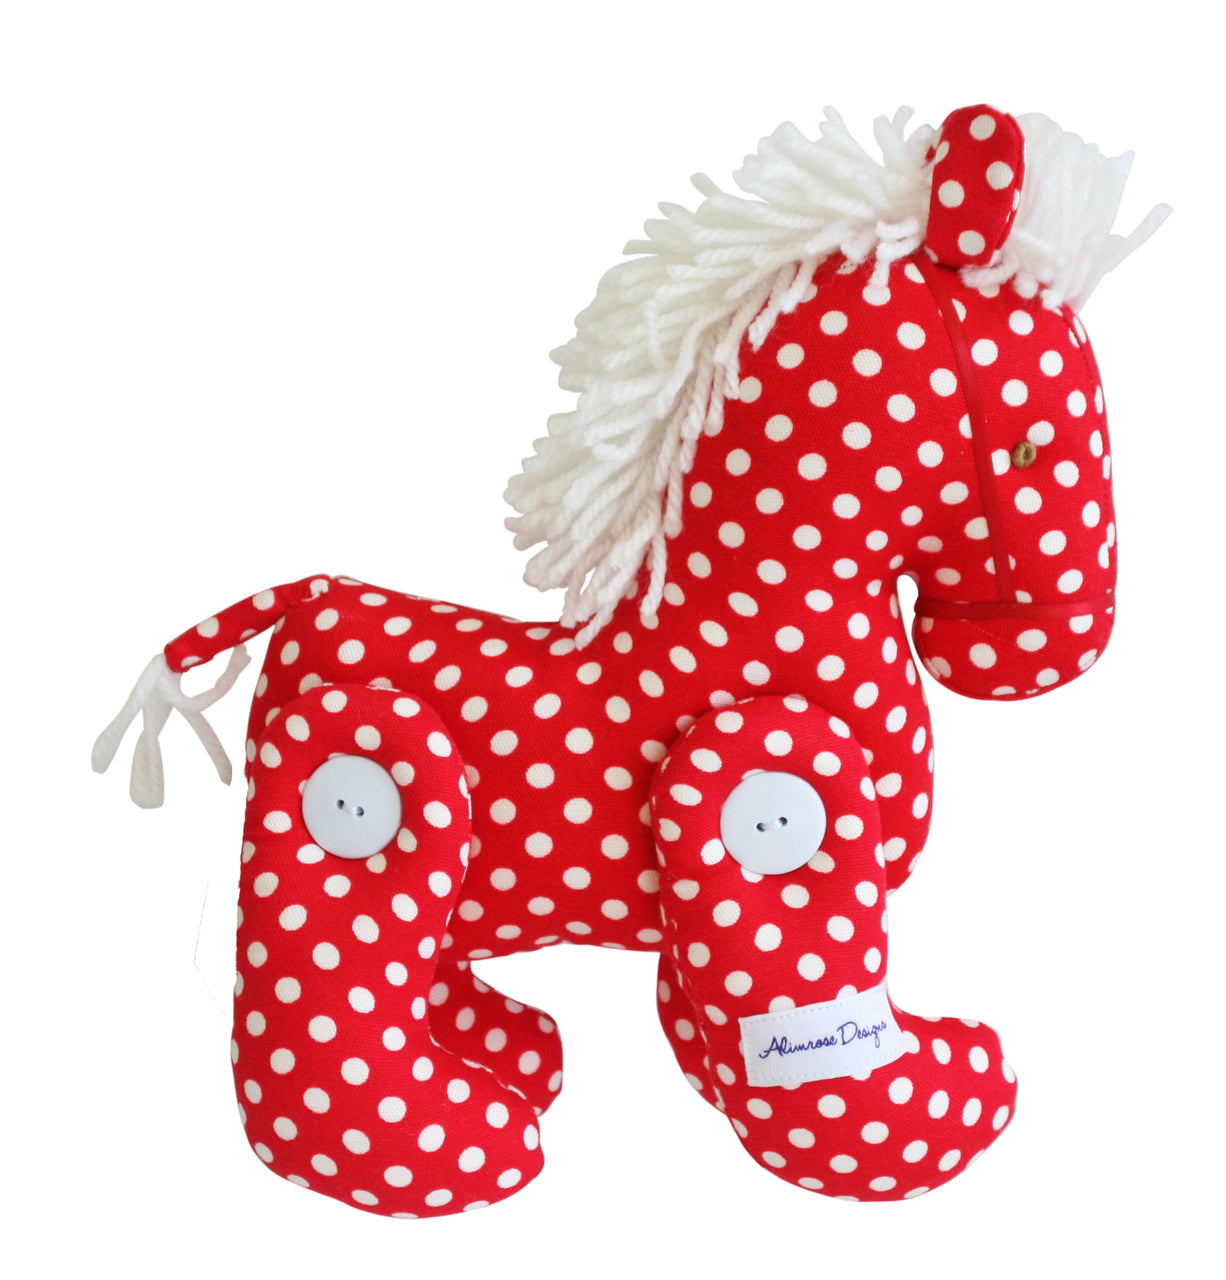 Alimrose Jointed Pony Red Spot 22cm